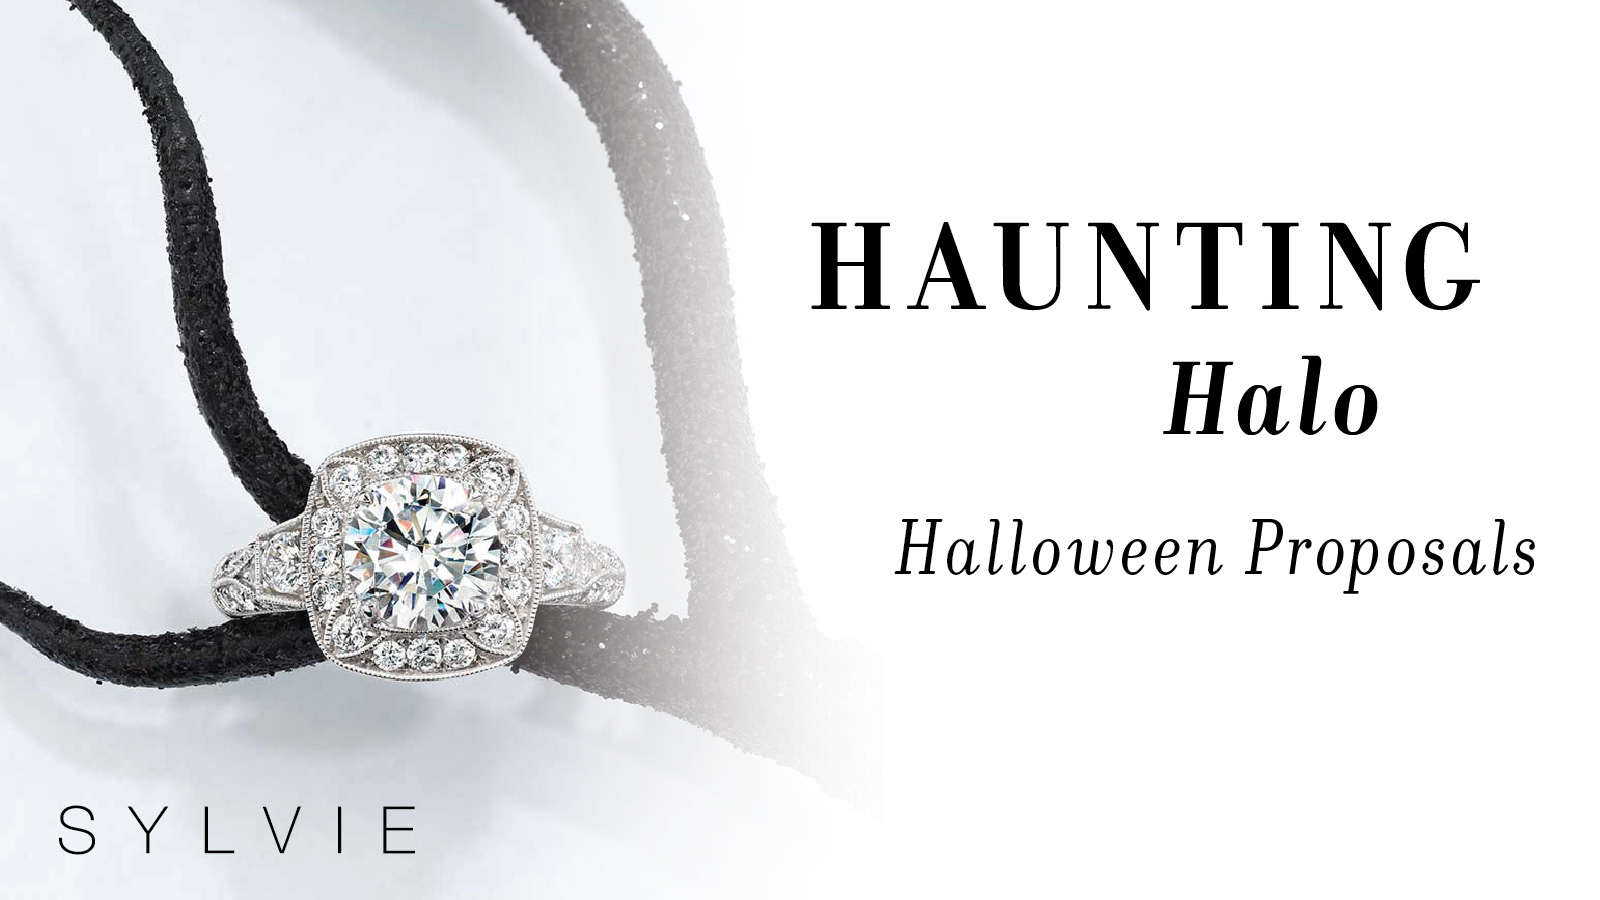 Haunting Halo Halloween Proposals - Sylvie Collection